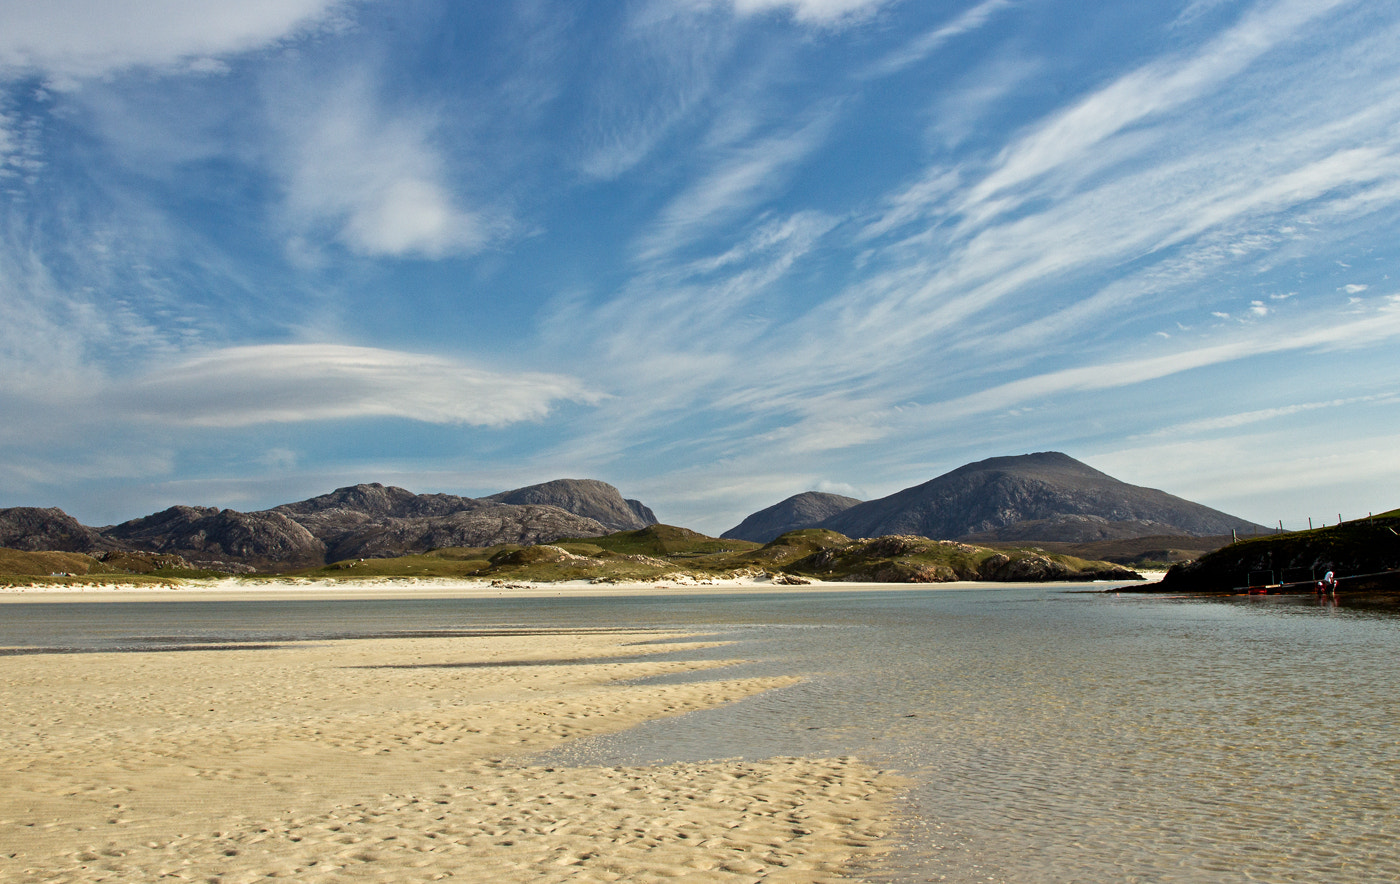 Photograph Uig Beach  - isle of lewis by rachel dunsdon on 500px